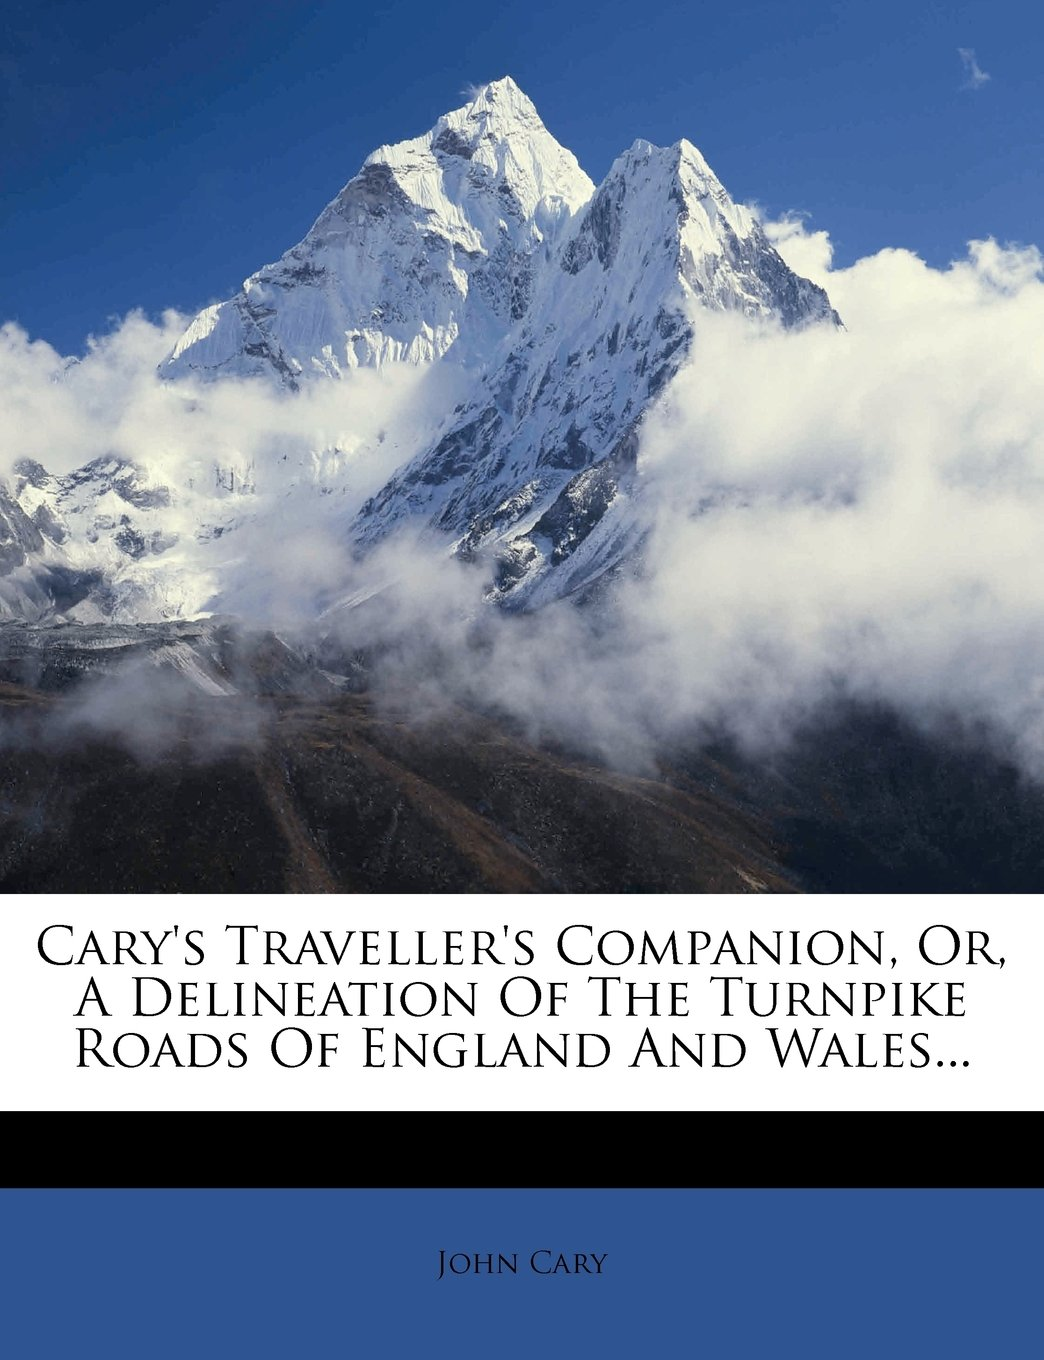 Download Cary's Traveller's Companion, Or, A Delineation Of The Turnpike Roads Of England And Wales... pdf